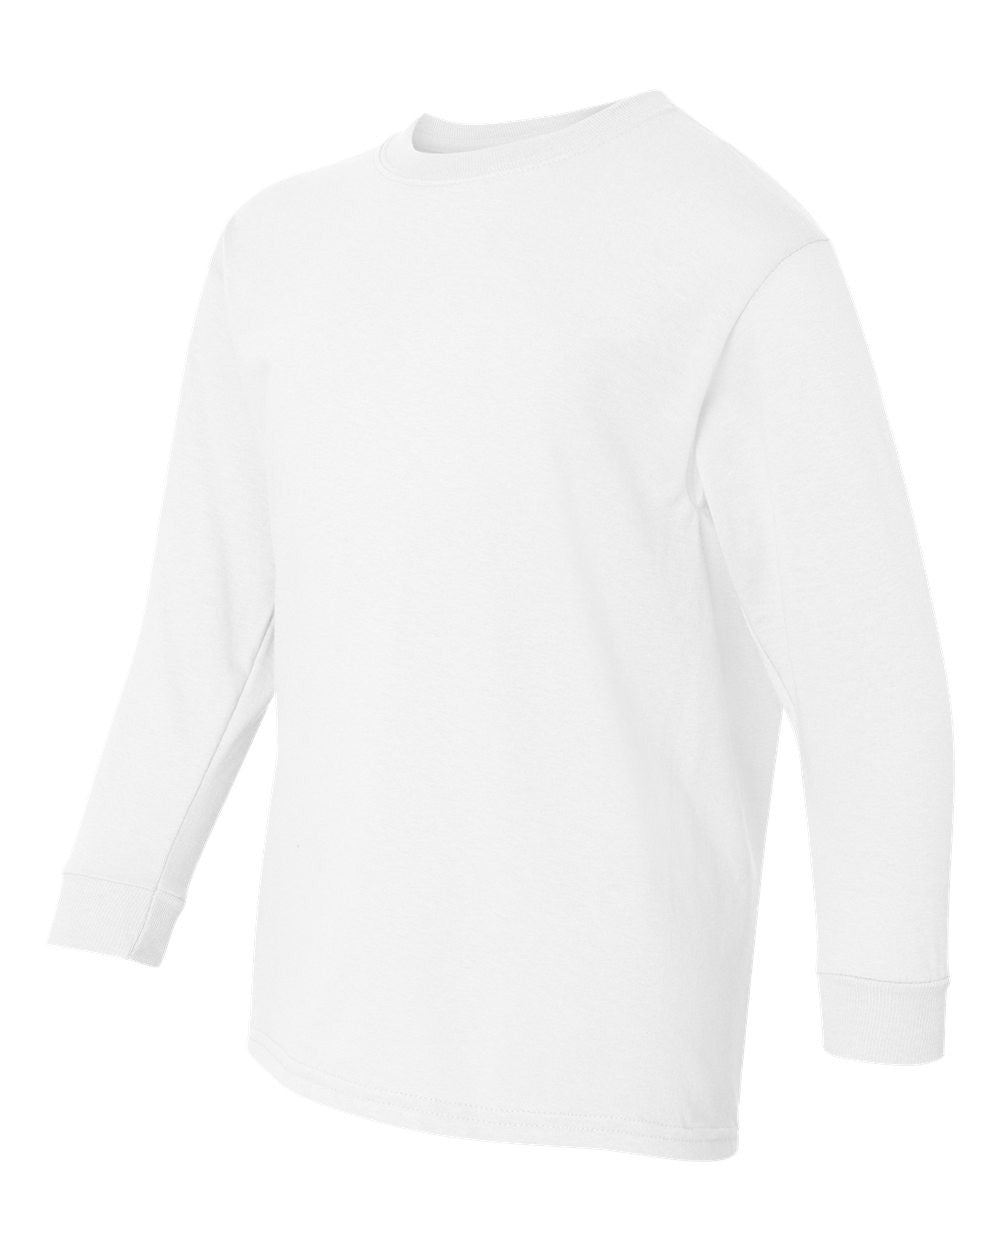 5400B- Heavy Cotton Youth Long Sleeve T-Shirt